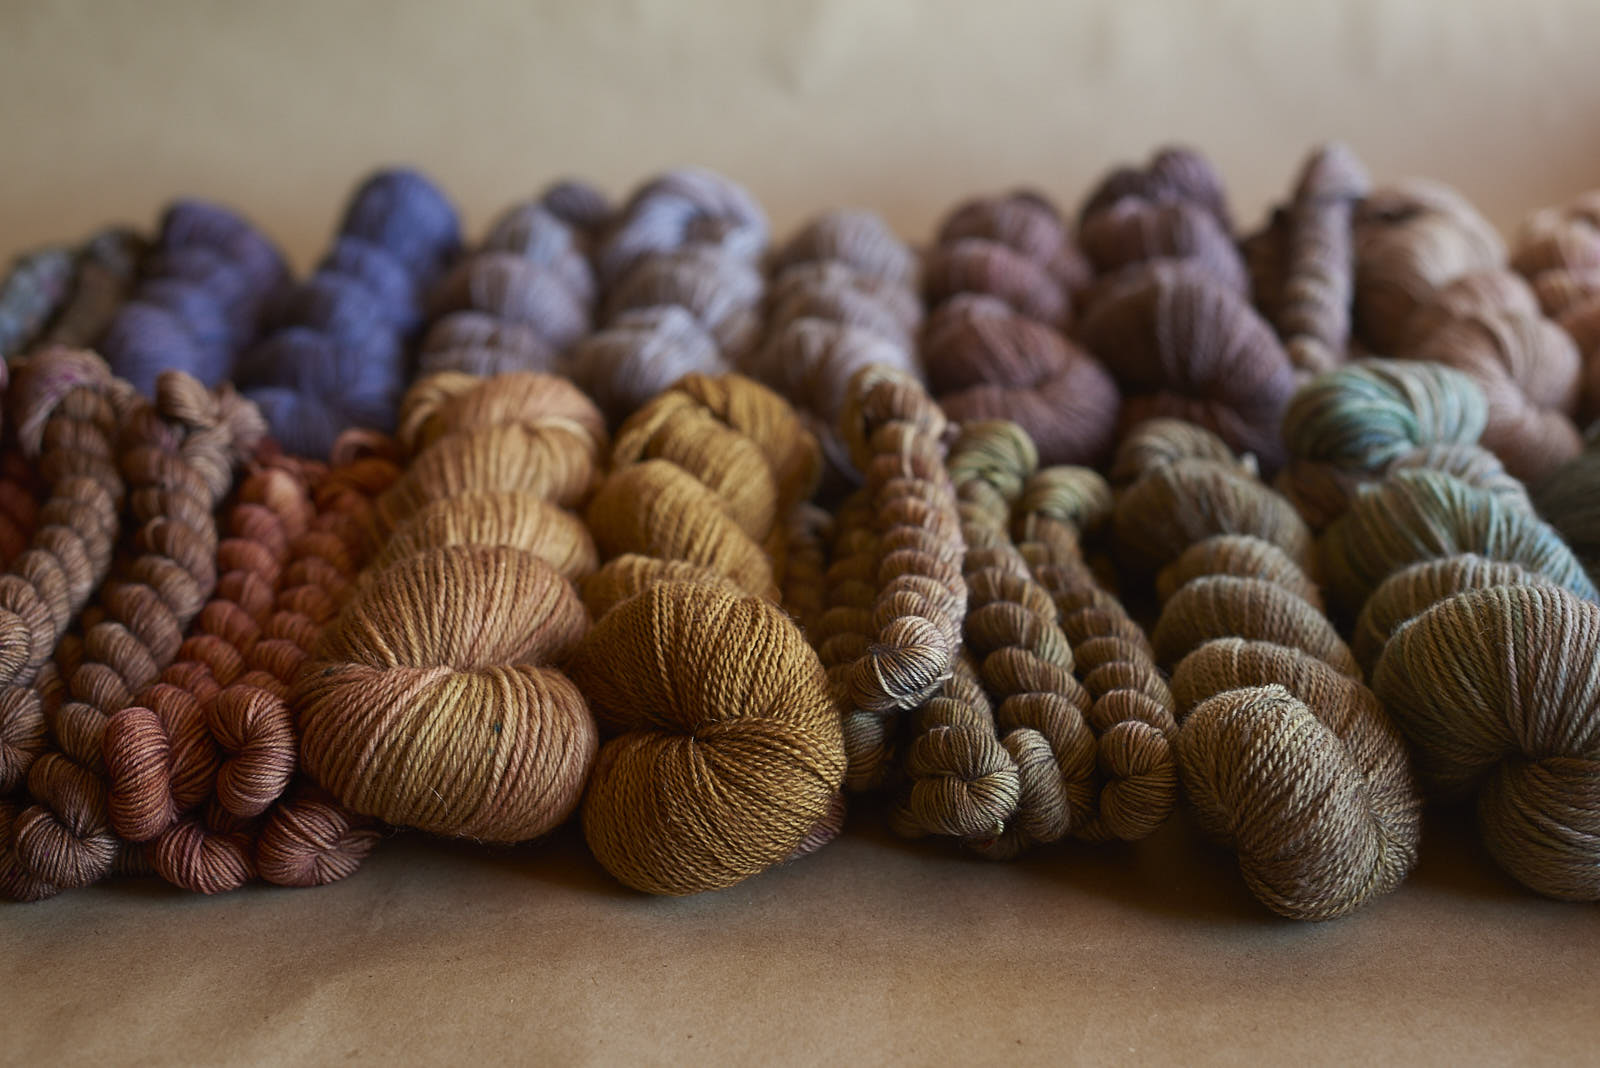 some of our stash of Eclipse skeins ready for the Open Day!